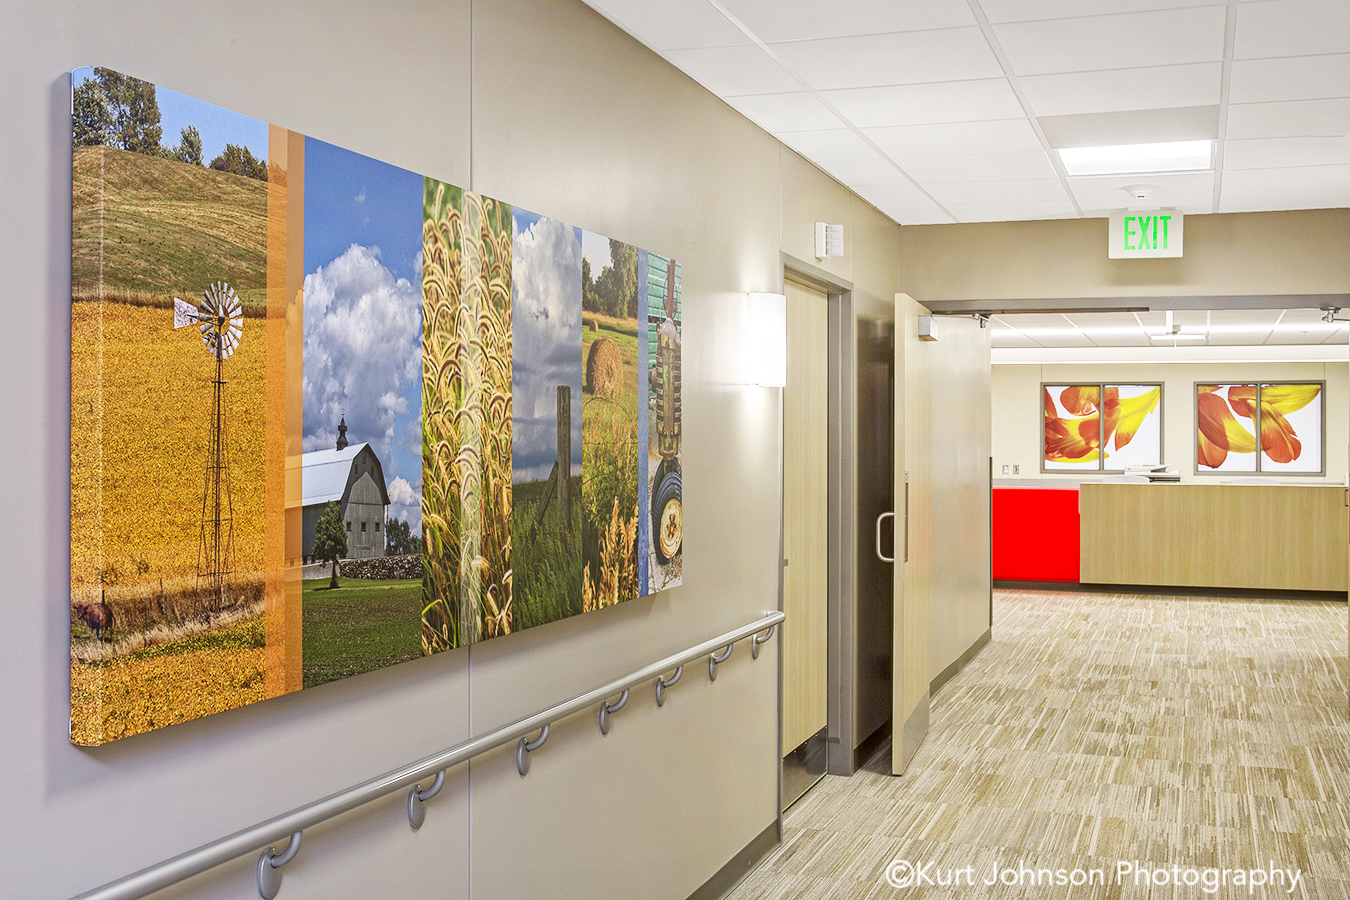 Lexington Regional Health Center Lexington NE install gallery wrapped canvas color slices midwest